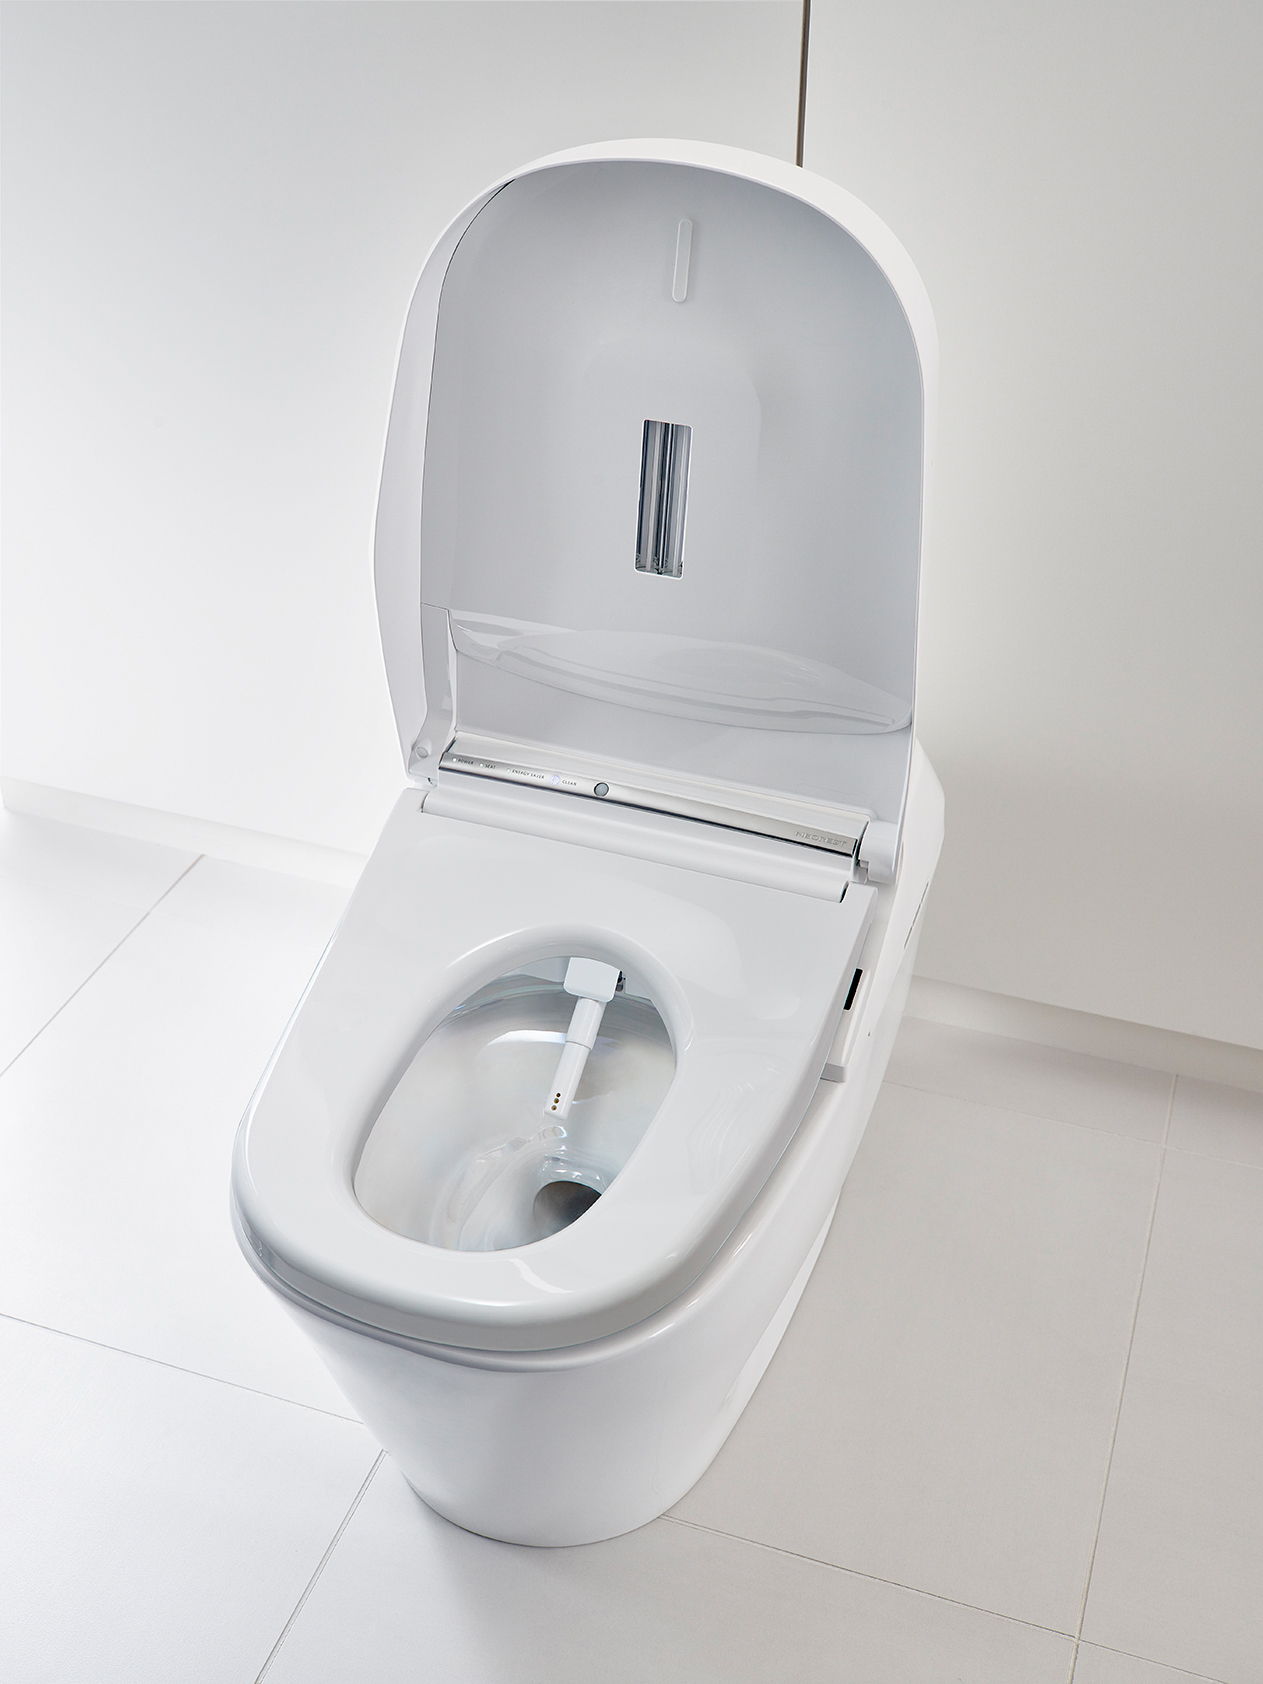 Toto Toilets Automatic Flush.Amazing Toto Toilets Montreal Ideas ...